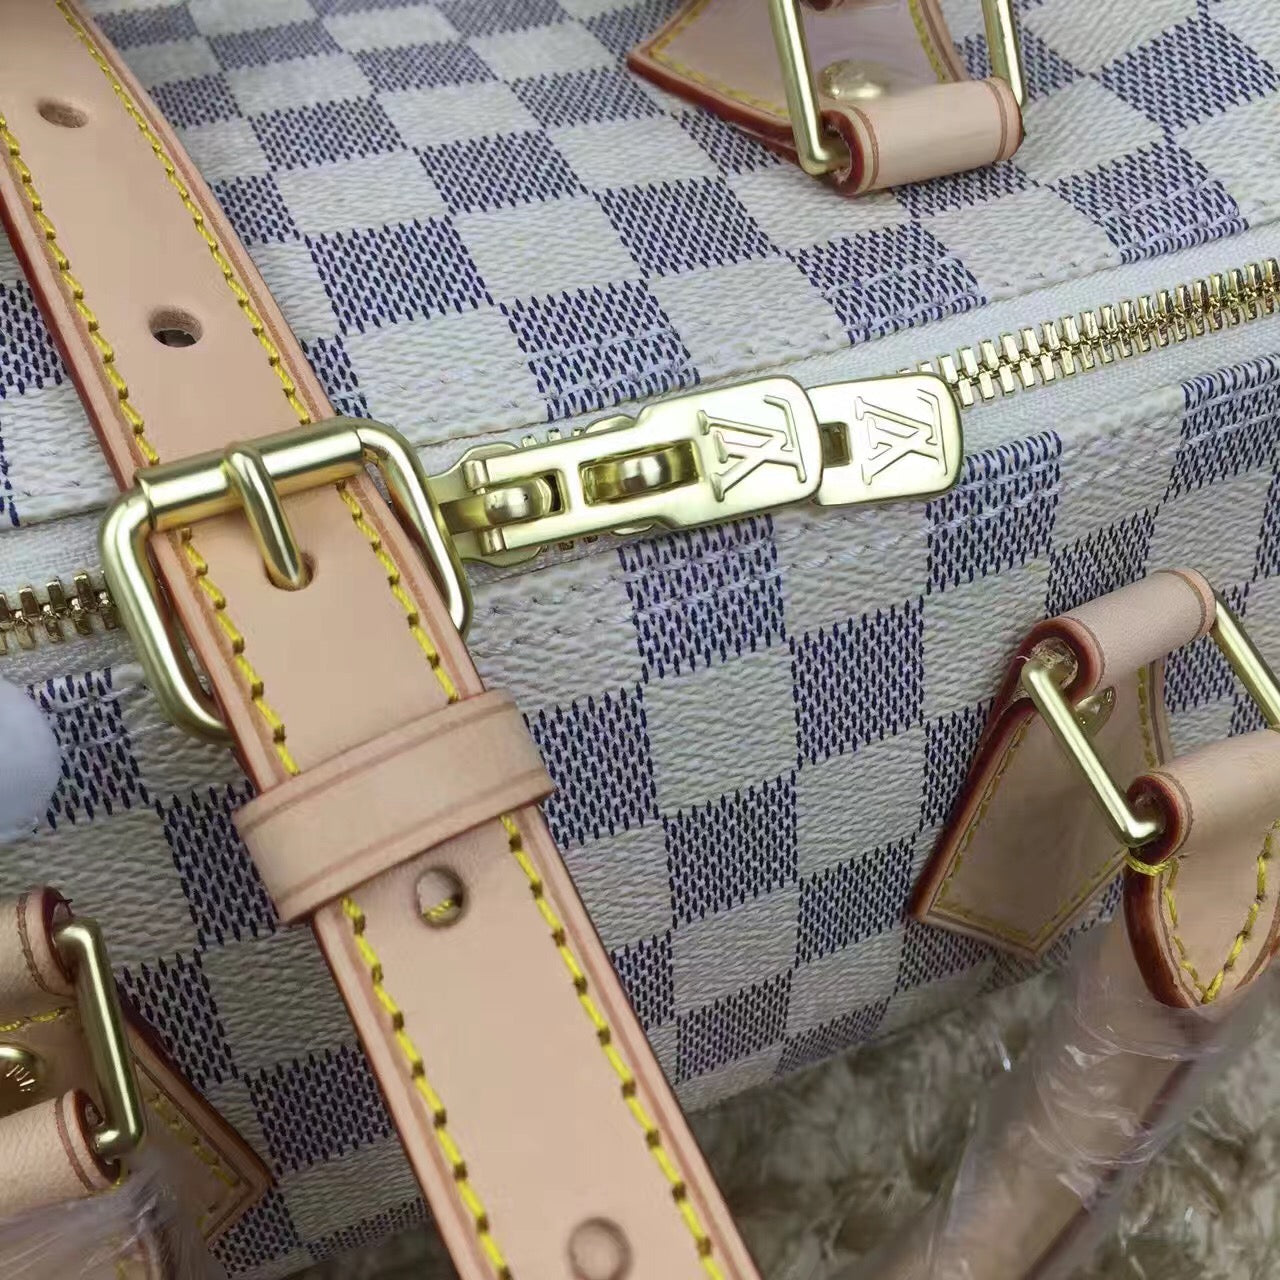 Bolsa Speedy Bandoulière Louis Vuitton - Loja Must Have